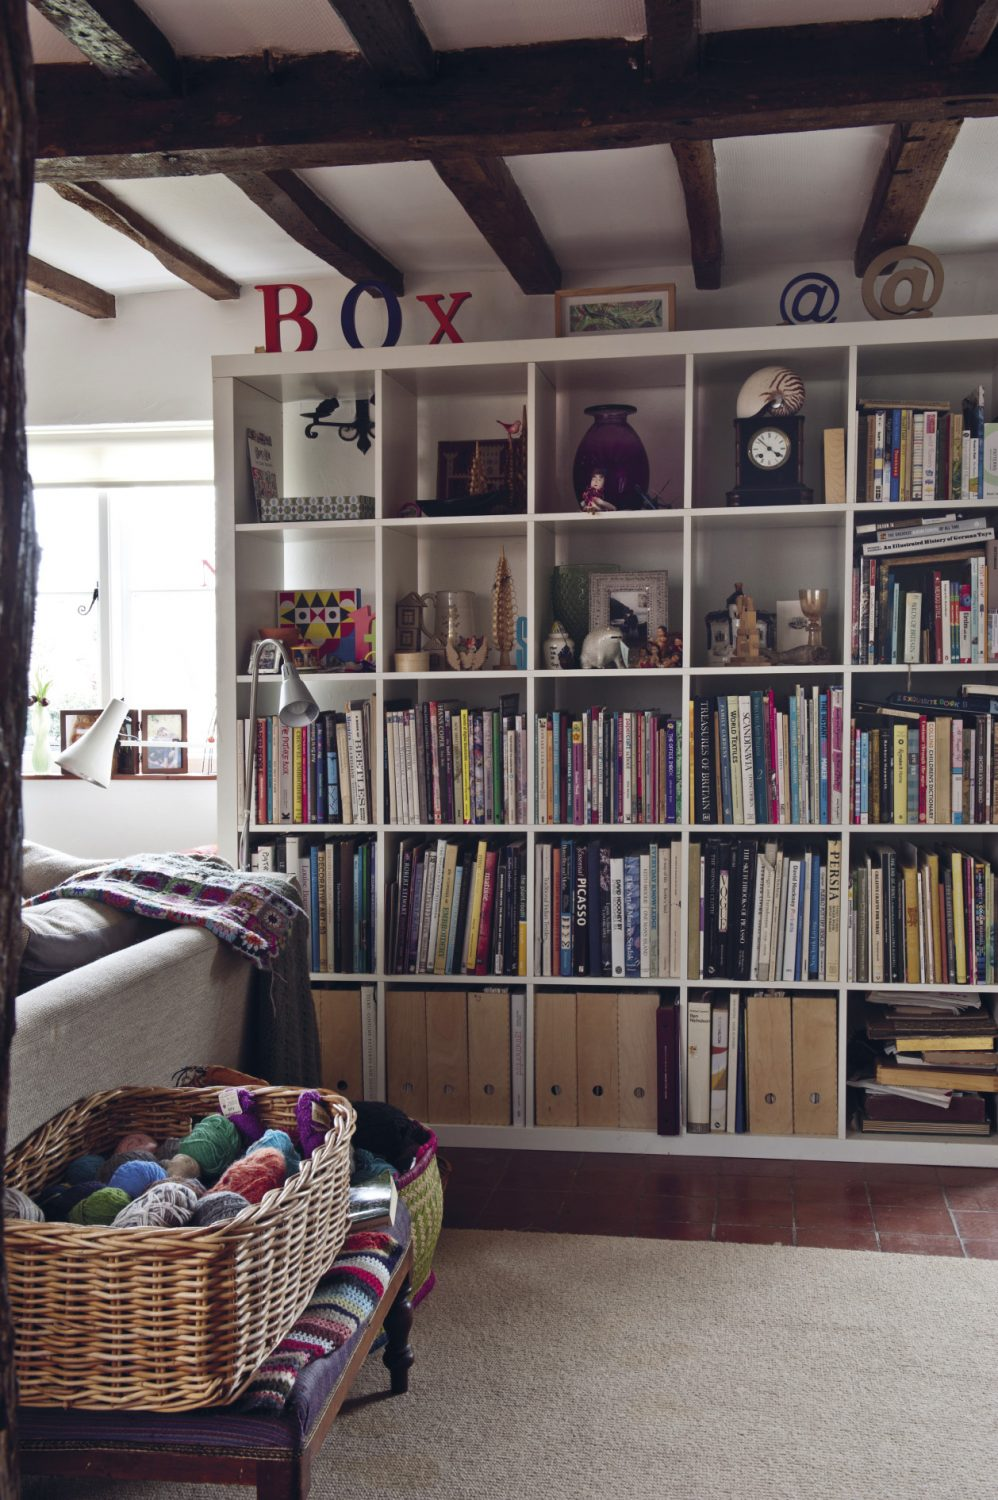 Two sides of the room are covered with shelves with books, files and vintage wooden toys